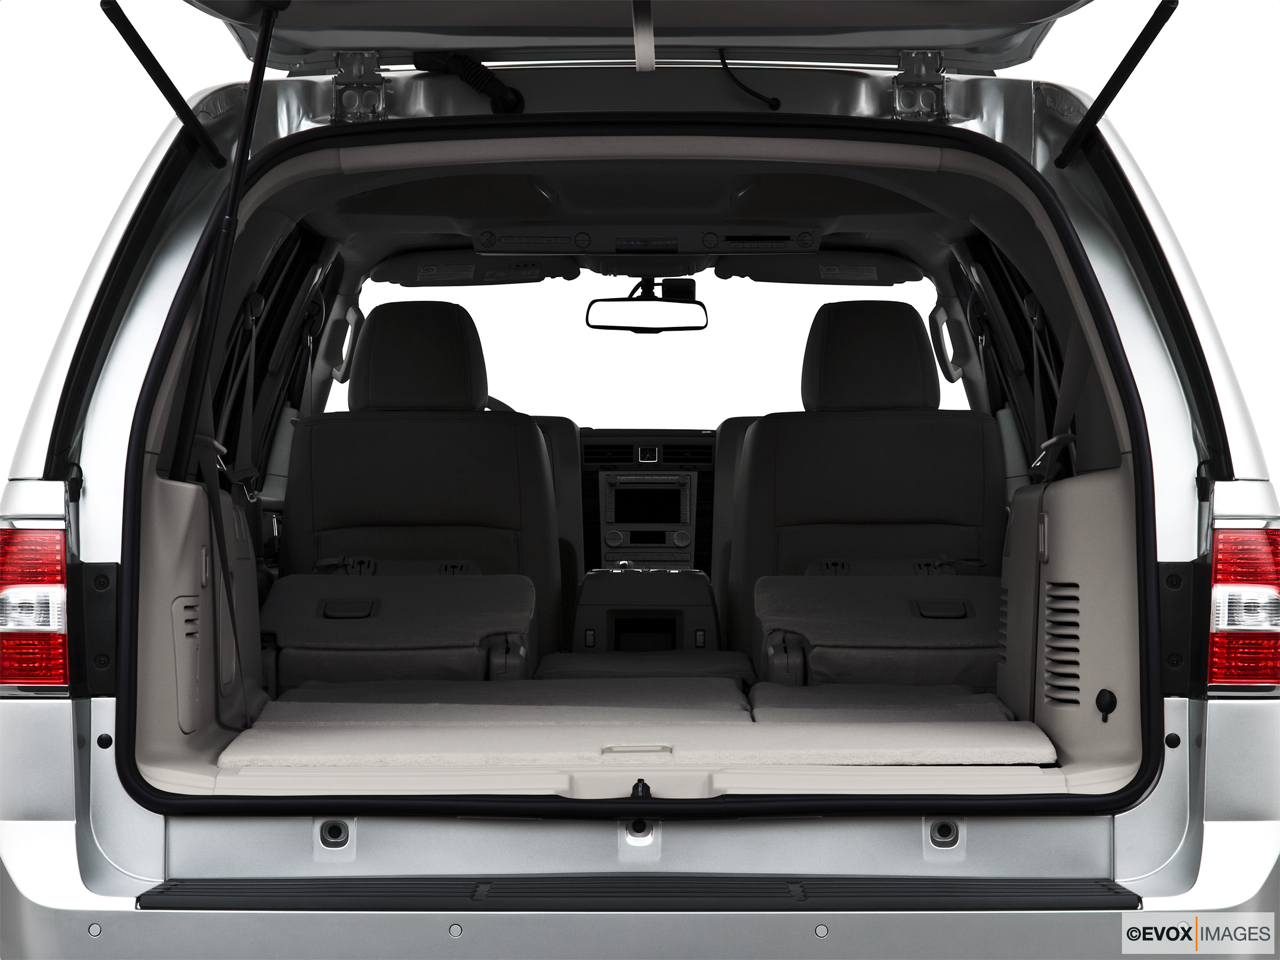 2010 Lincoln Navigator Base Hatchback & SUV rear angle.